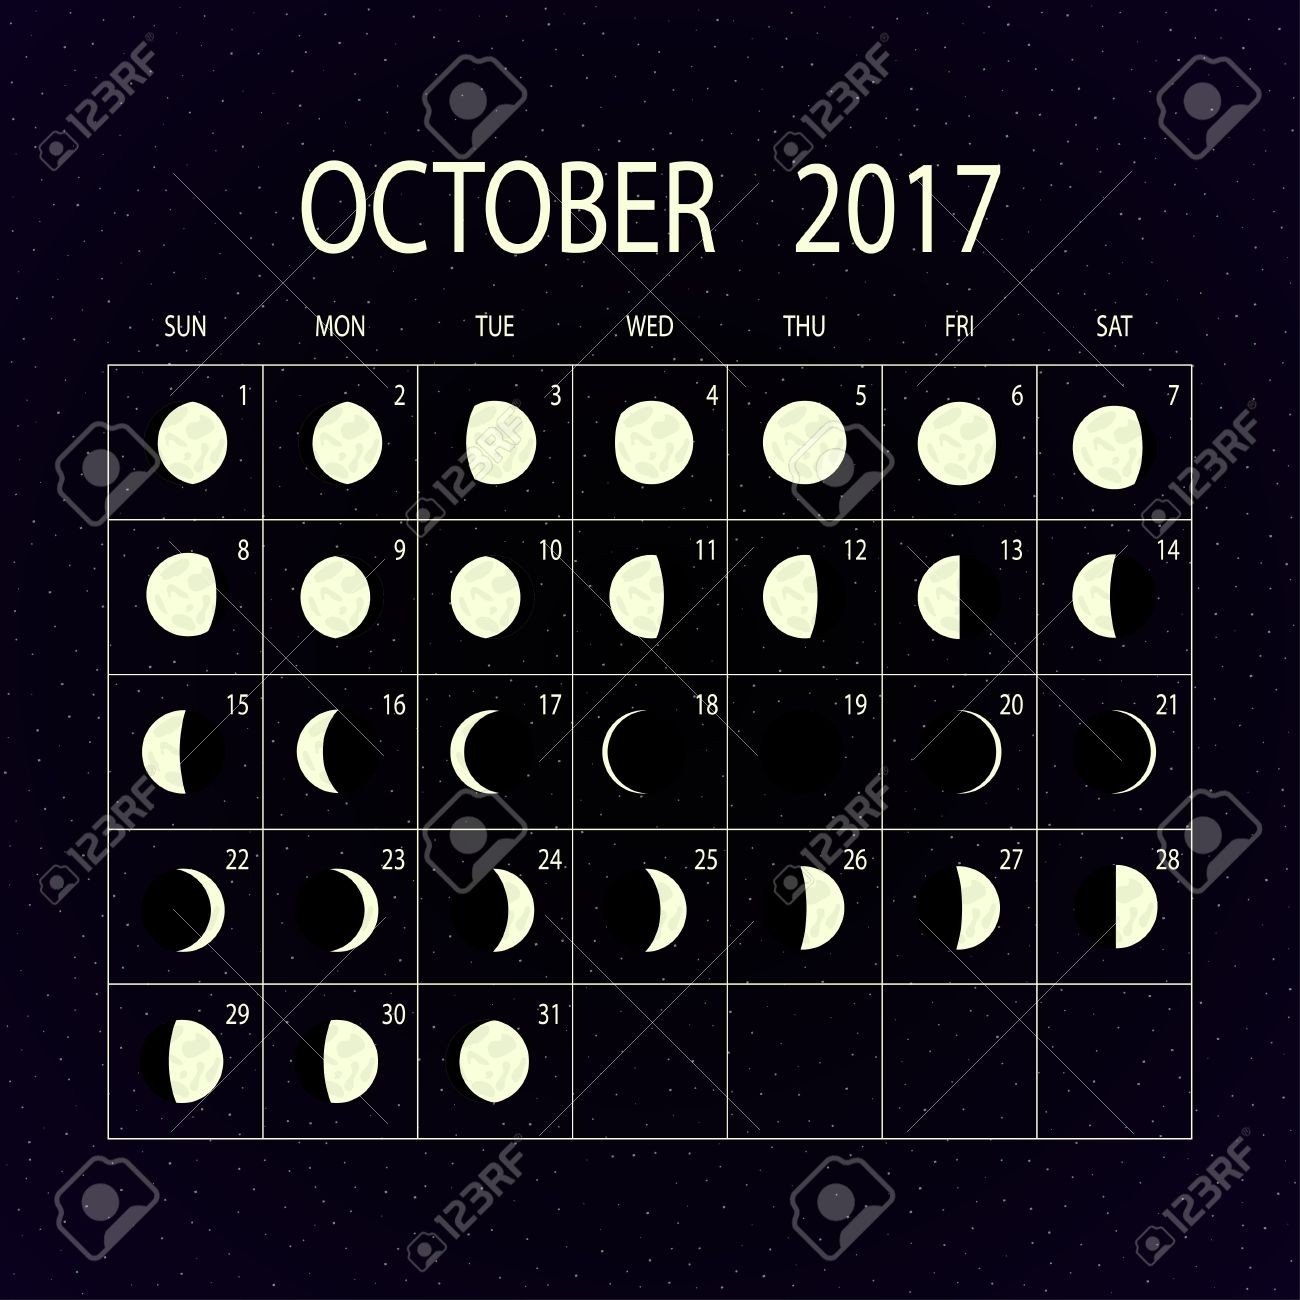 Moon Phases Calendar For 2017 On Night Sky. October. Vector Illustration.  2017 Moon Phase October